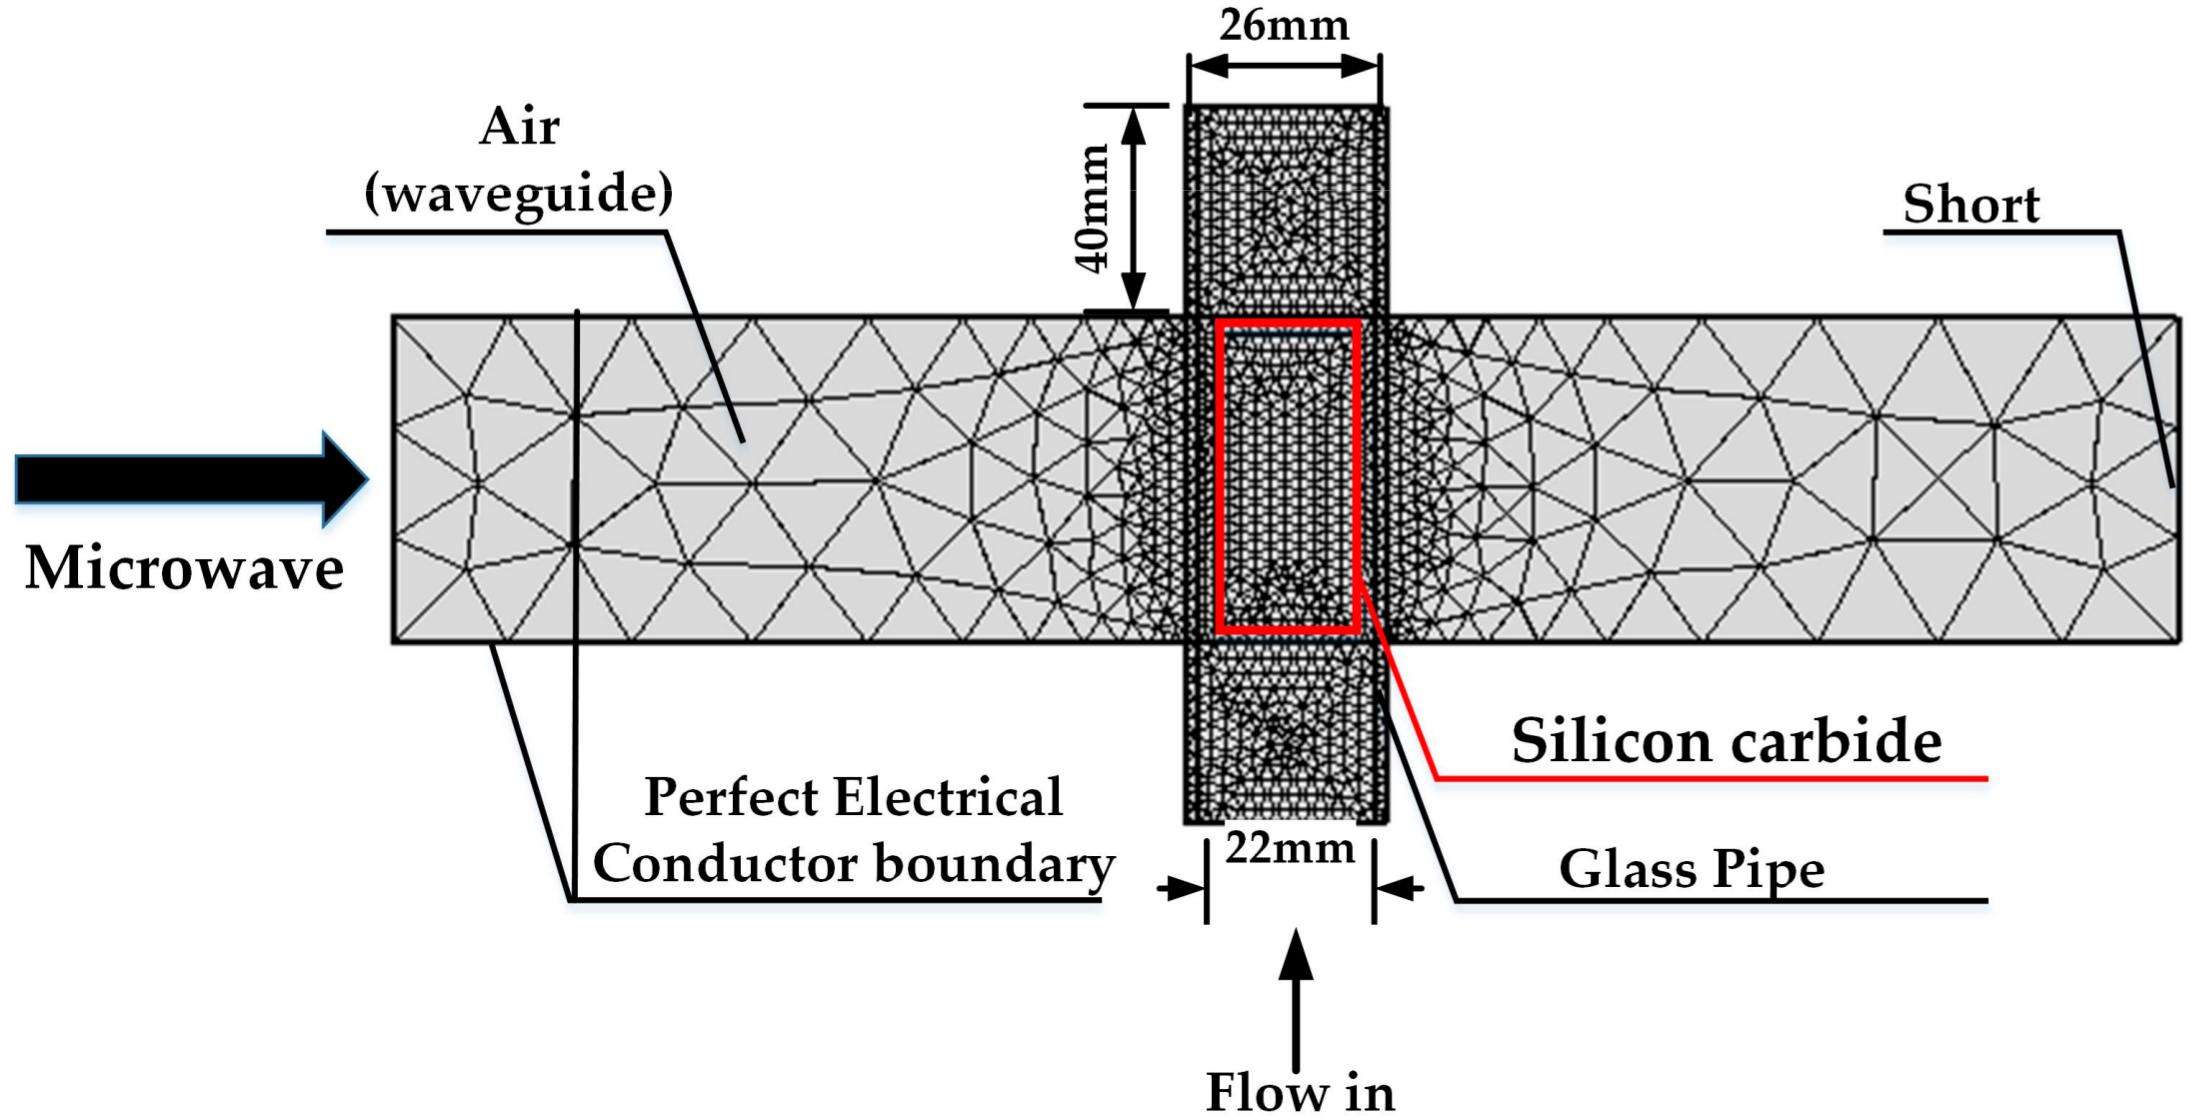 Processes Free Full Text Simulation And Analysis Of Oleic Acid Process Flow Diagram Glass Production No